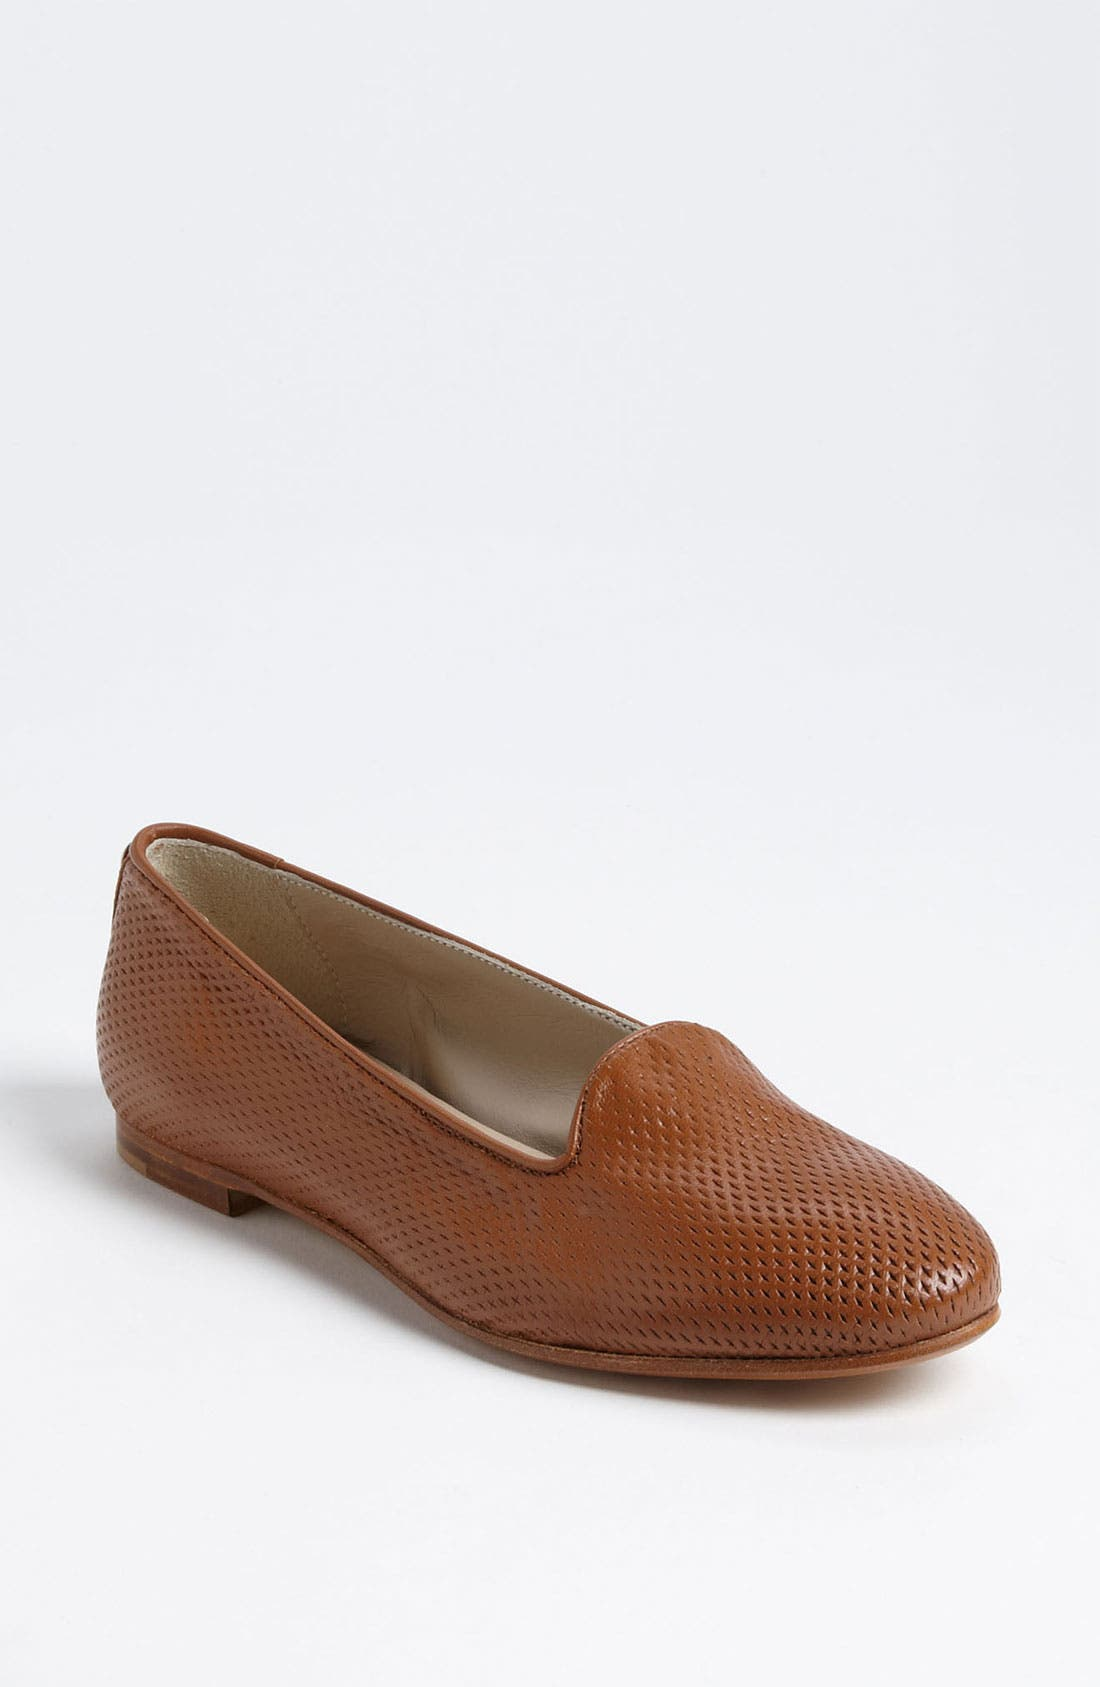 Alternate Image 1 Selected - Attilio Giusti Leombruni Slip-On